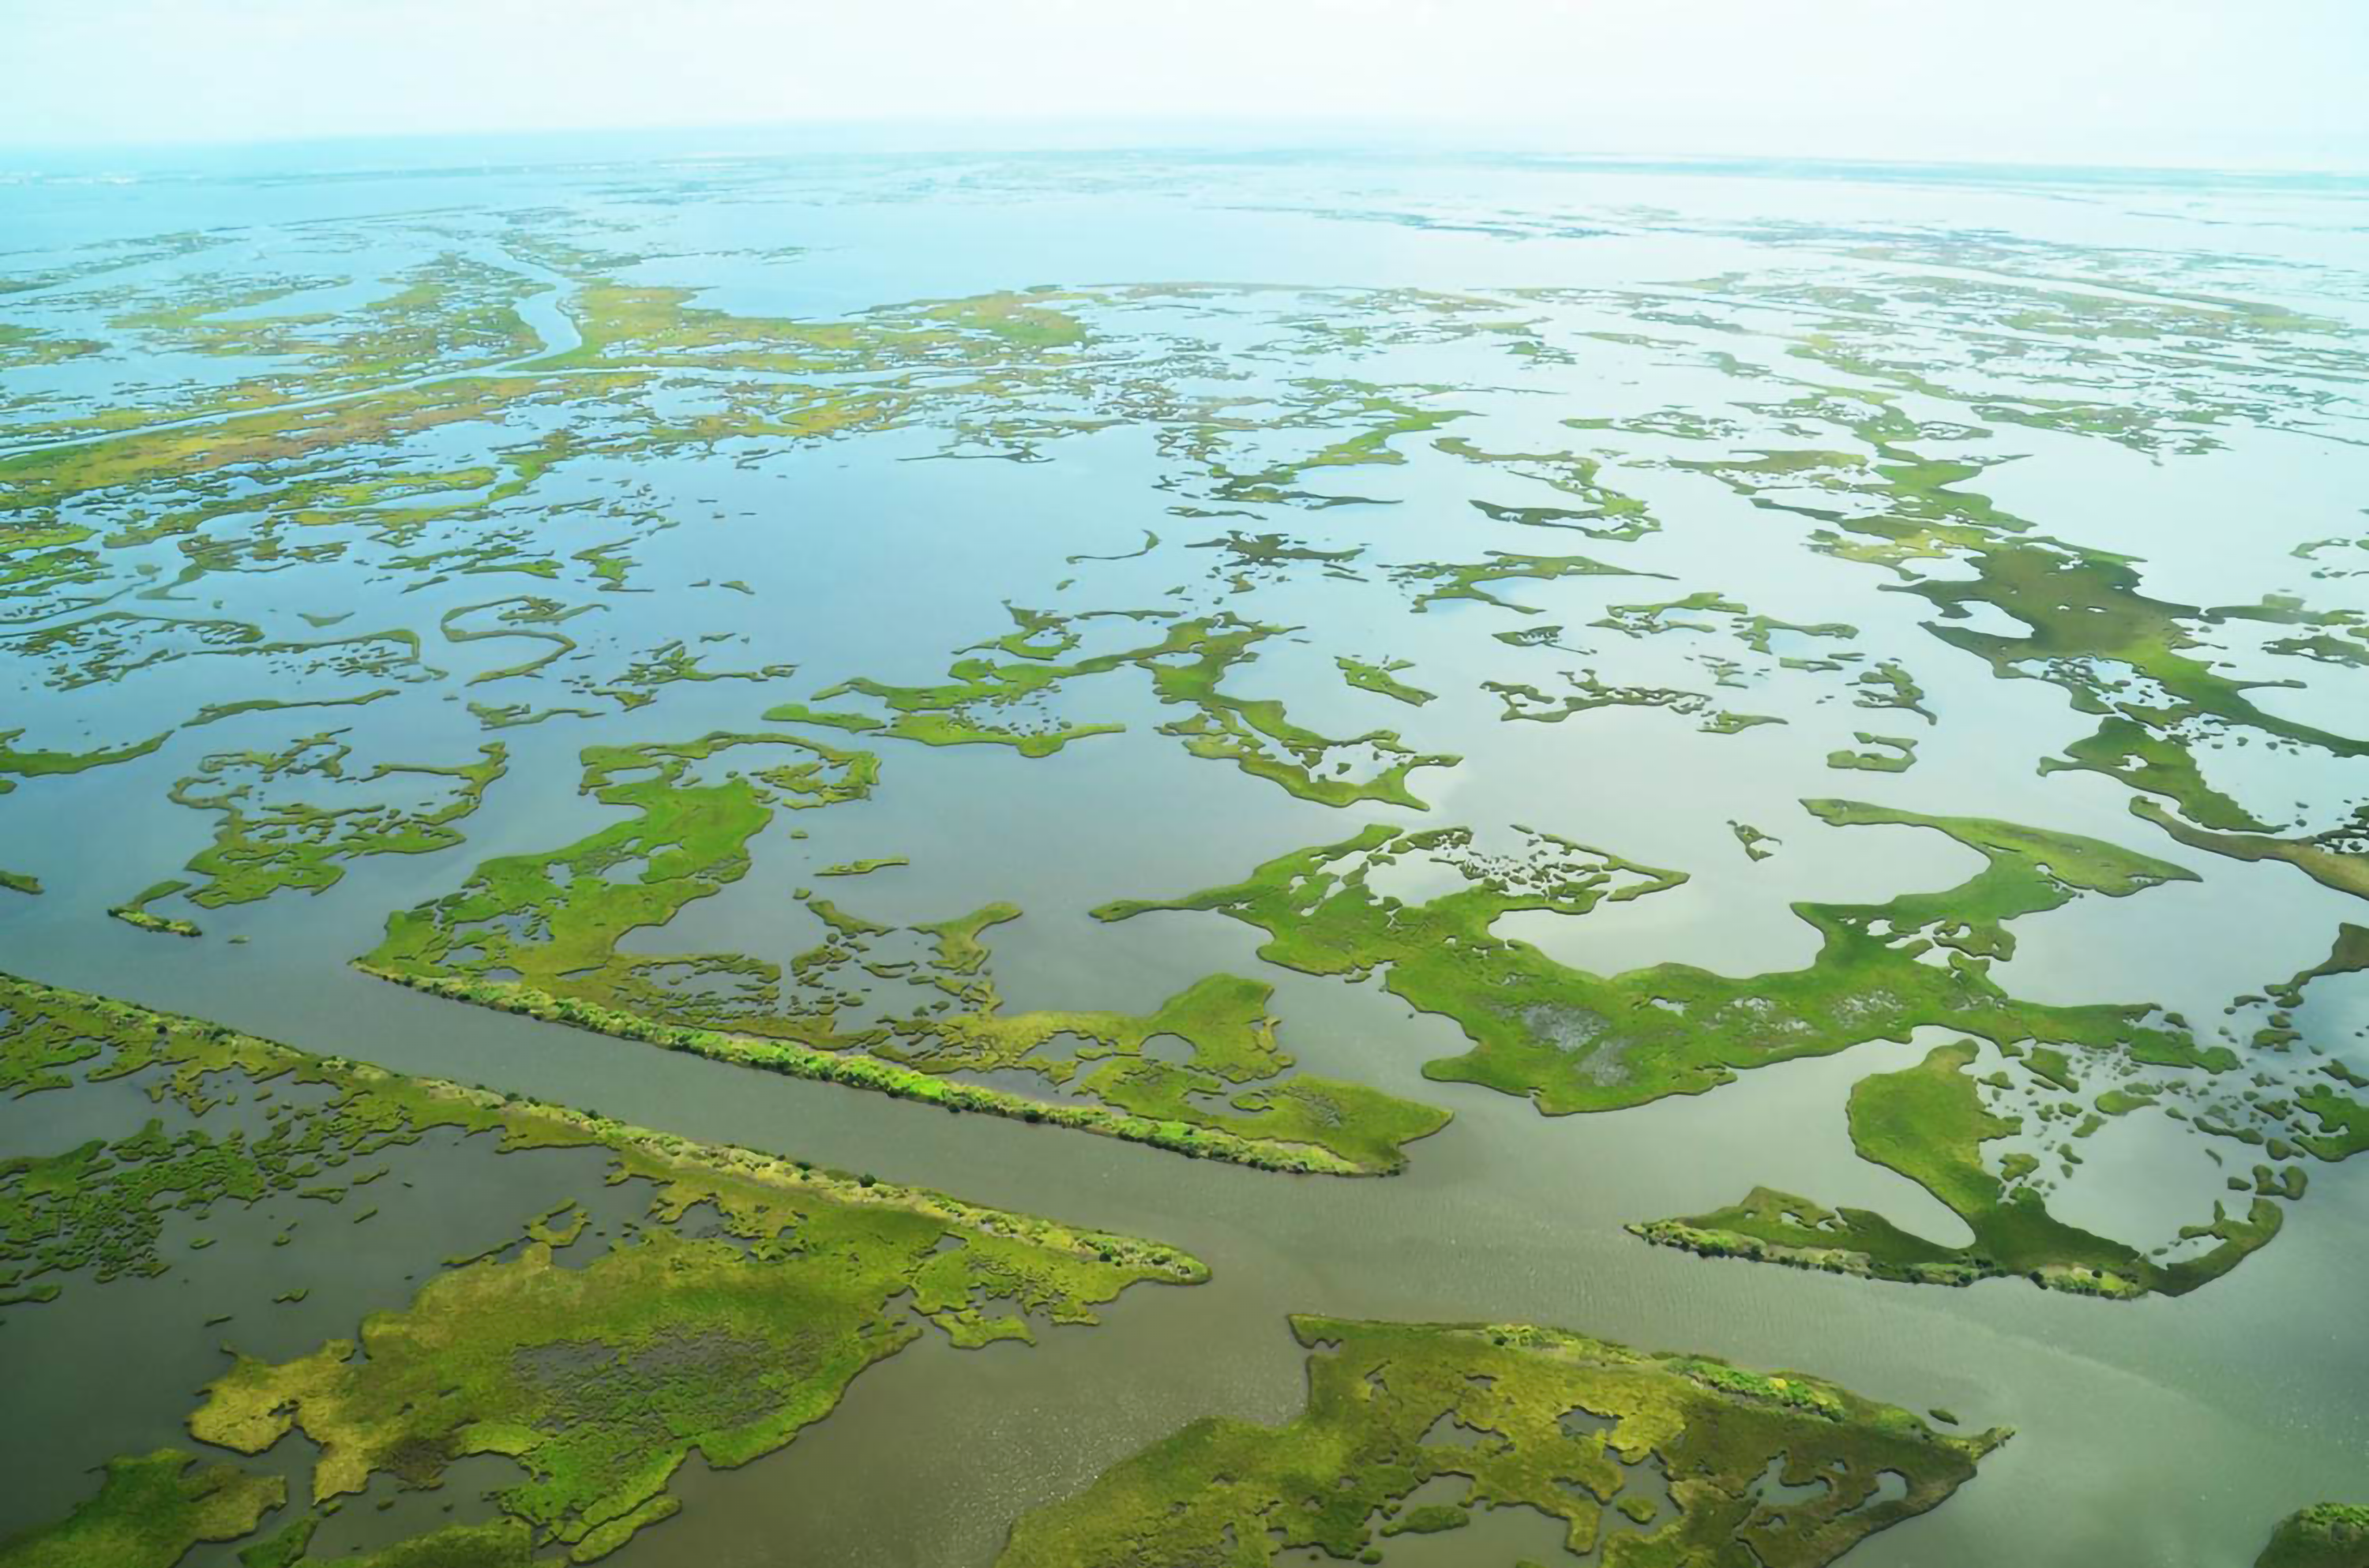 An aerial view of Louisiana's Barataria Basin.